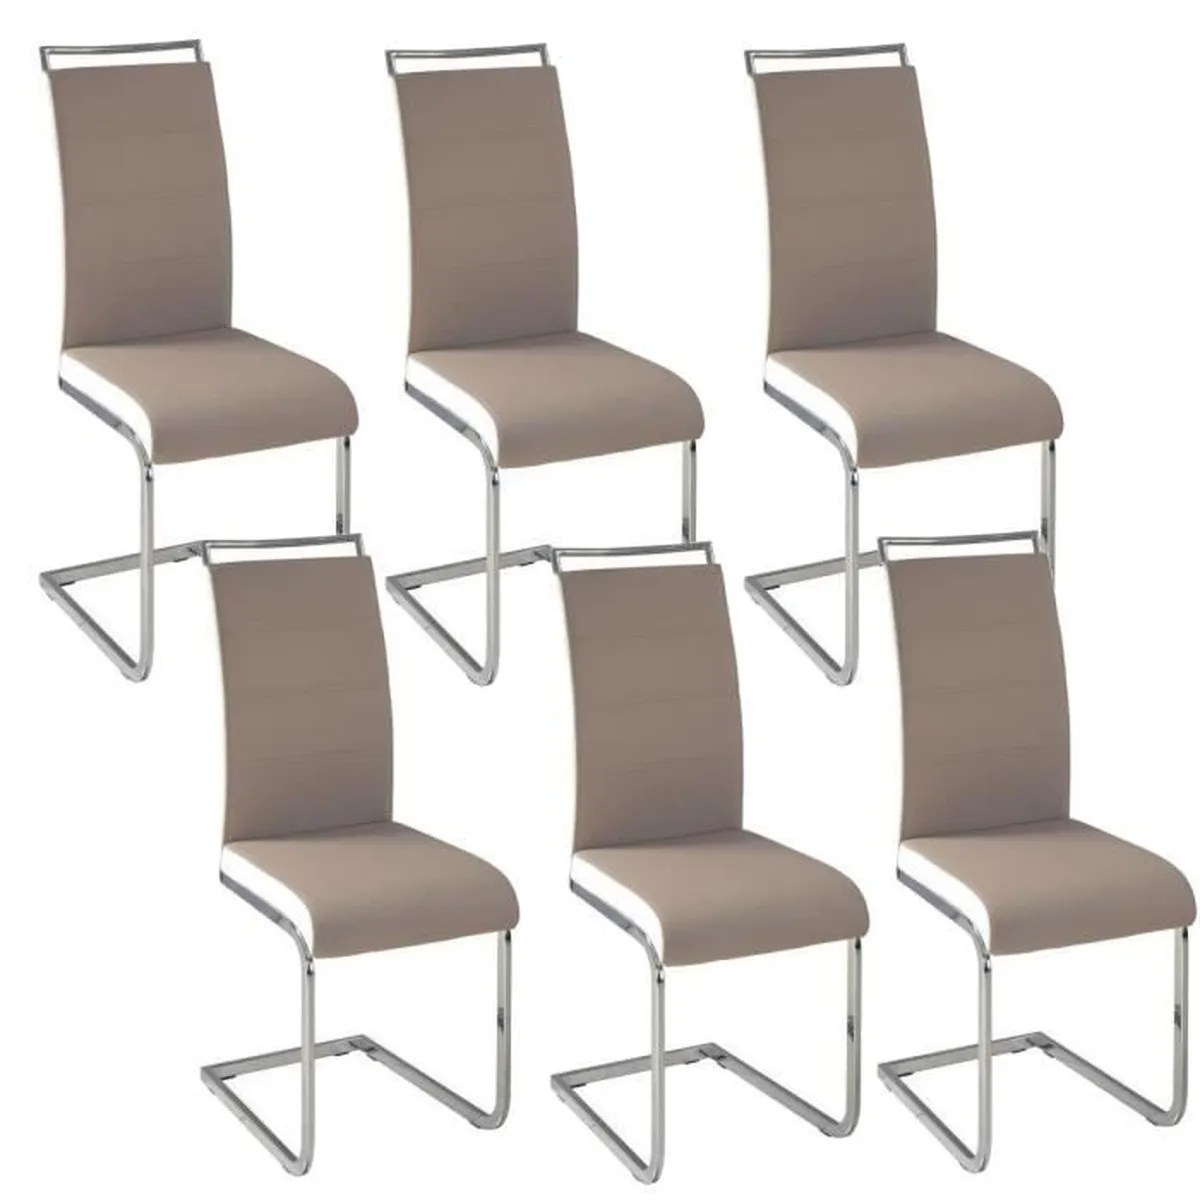 Chaise Salon Dylan Lot De 6 Chaises Salon Taupe Blanc Achat Vente